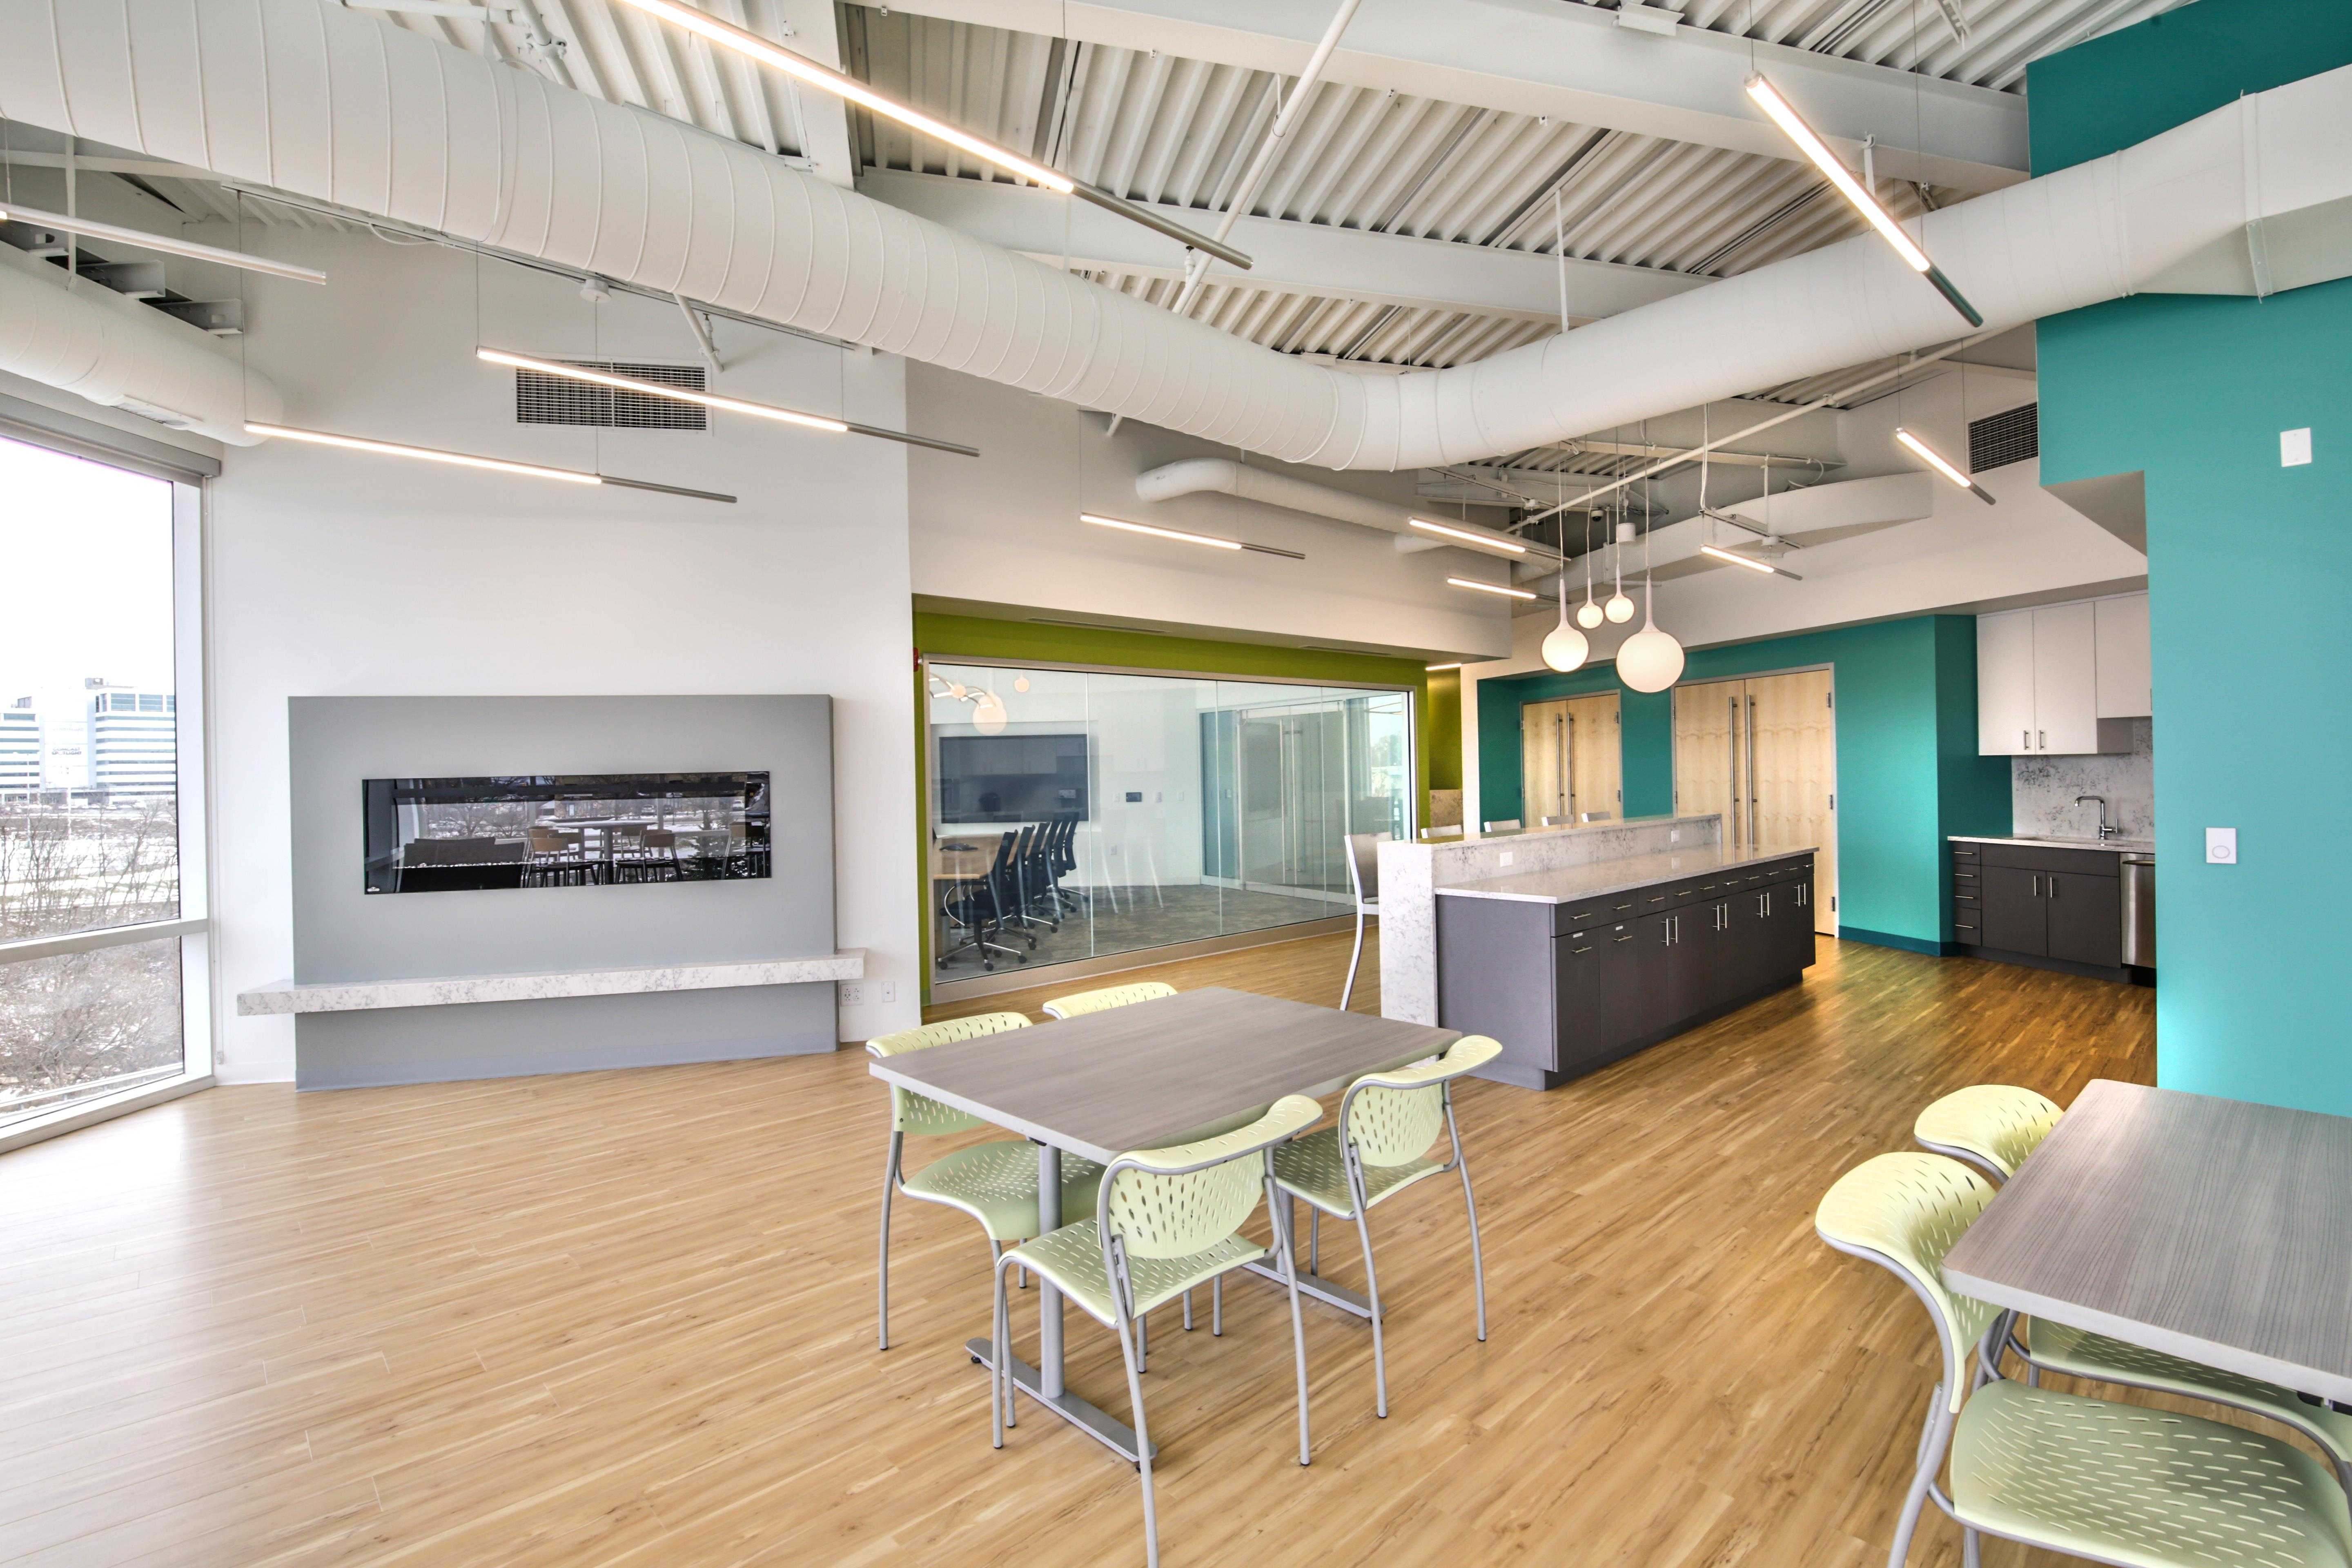 Burns Scalo Real Estate - Event Space- Open Cafe